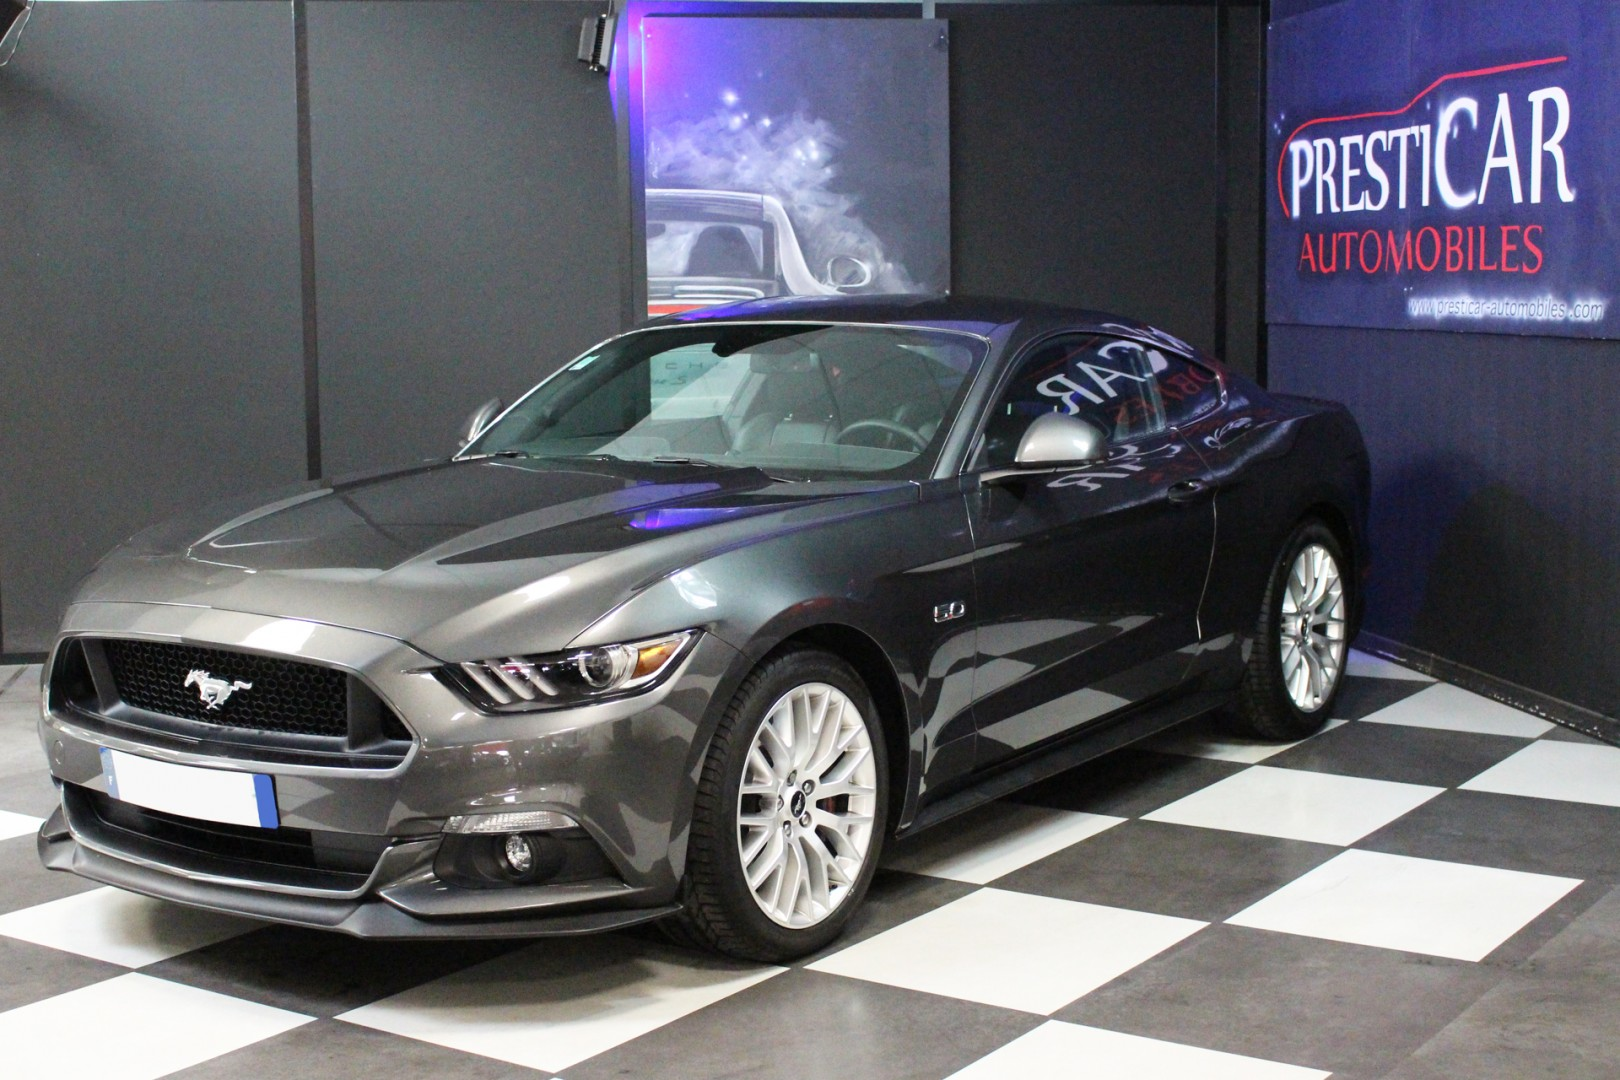 2017 Ford Mustang Gt Premium >> FORD Mustang GT Fastback 5.0 V8 421Ch BVM - Presticar Automobiles